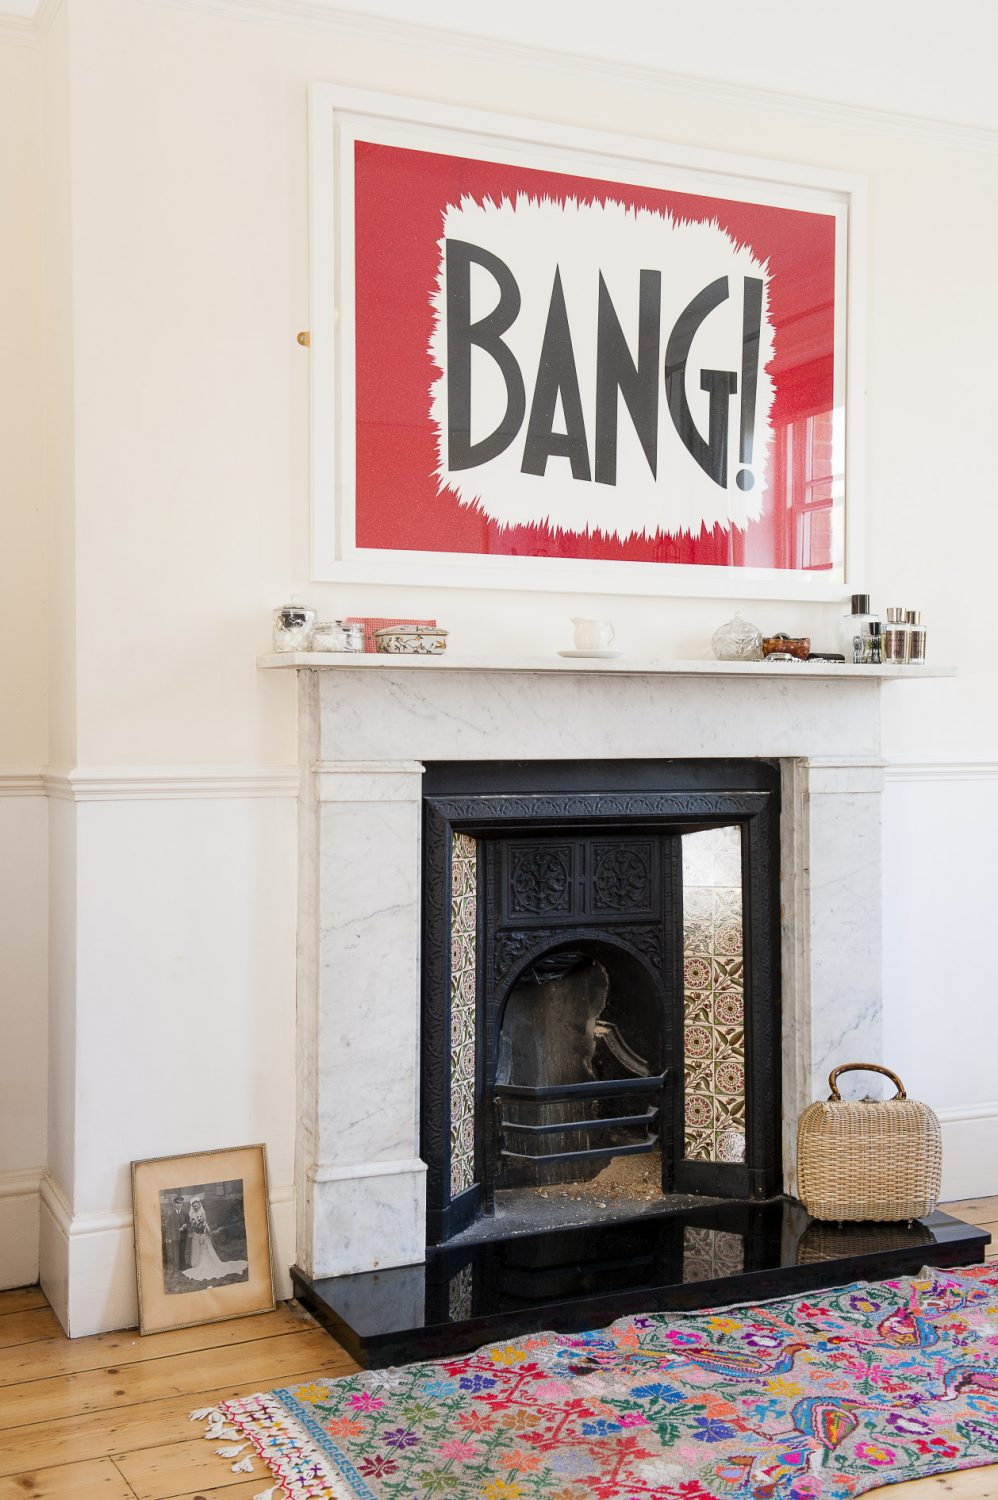 The framed Bang! poster in the master bedroom is a limited edition print by pop artist William Blanchard